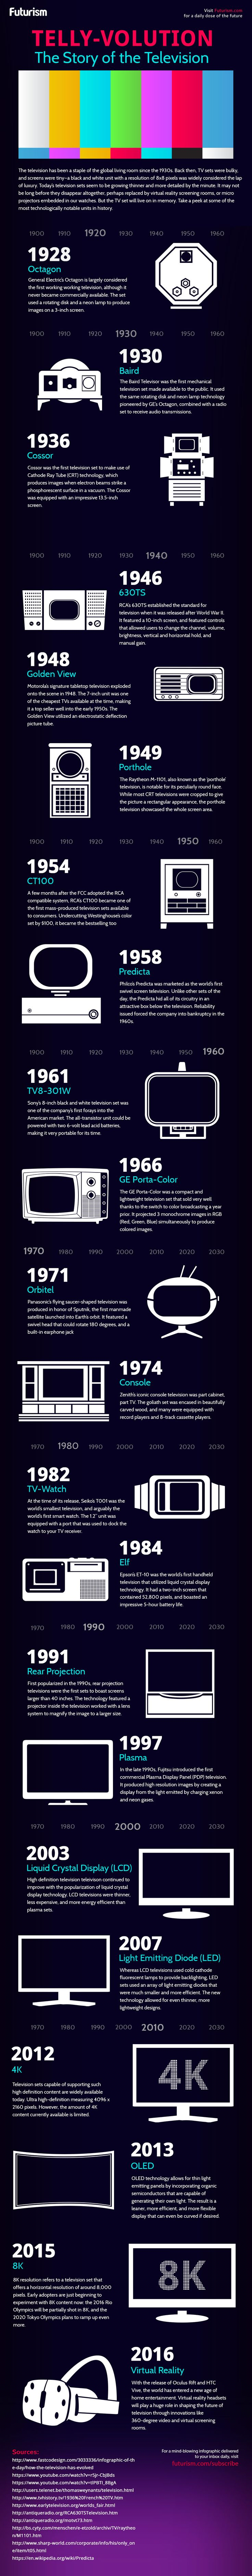 Telly-volution: The Story Of The Television [Infographic] — Before curved OLED screens, 8K video, and virtual living rooms, there were a lot of really weird televisions sets. These are some of our favorites. — https://futurism.com/images/telly-volution-story-television-infographic/